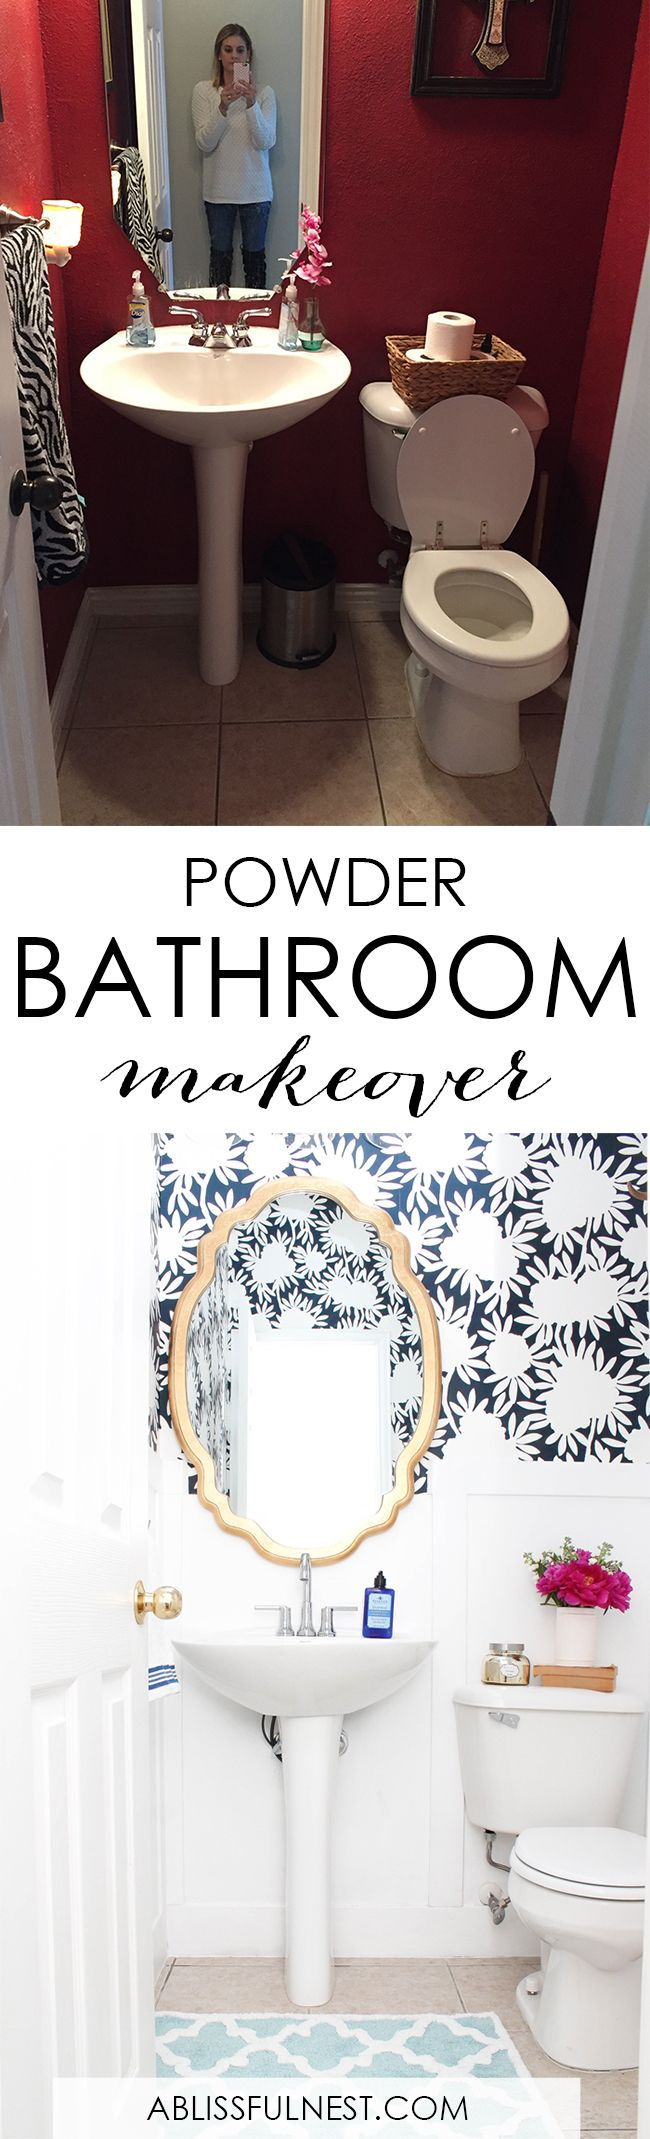 This is such a huge transformation on this bathroom with very few updates. Checkout how with a few simple changes and inspiration from @deltafaucet , you can get a wow factor bathroom remodel. See more on http://ablissfulnest.com/ #bathroomremodel #bathroommakeover #ad #deltafaucet #deltaliving